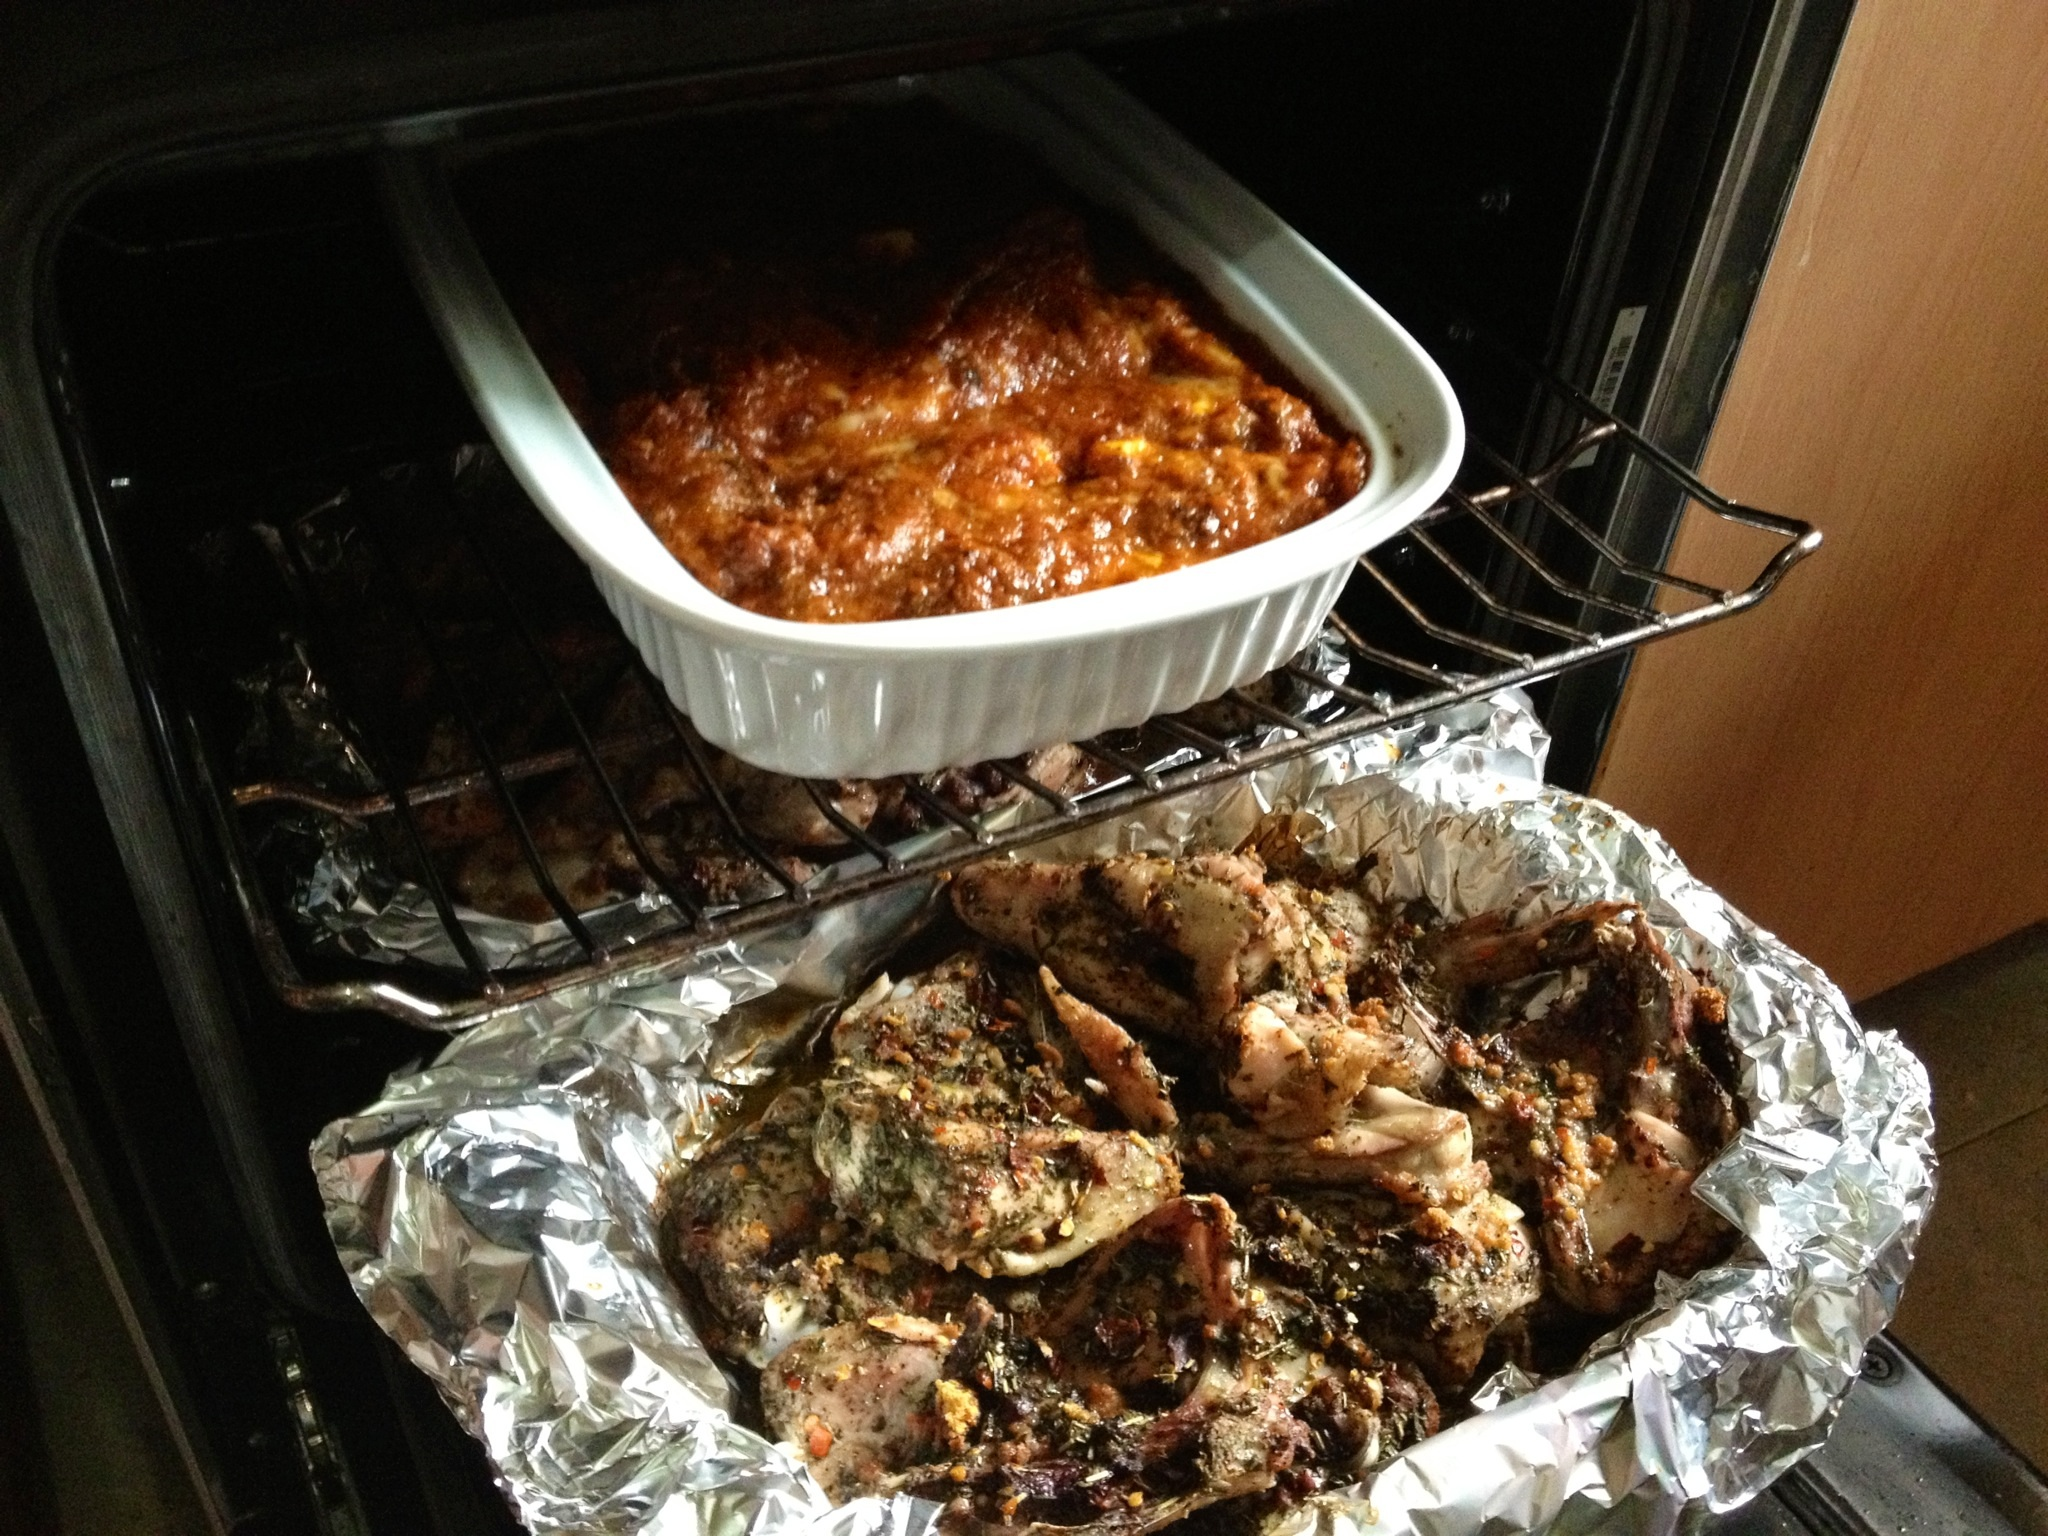 Lasagna and herbed chicken in the oven